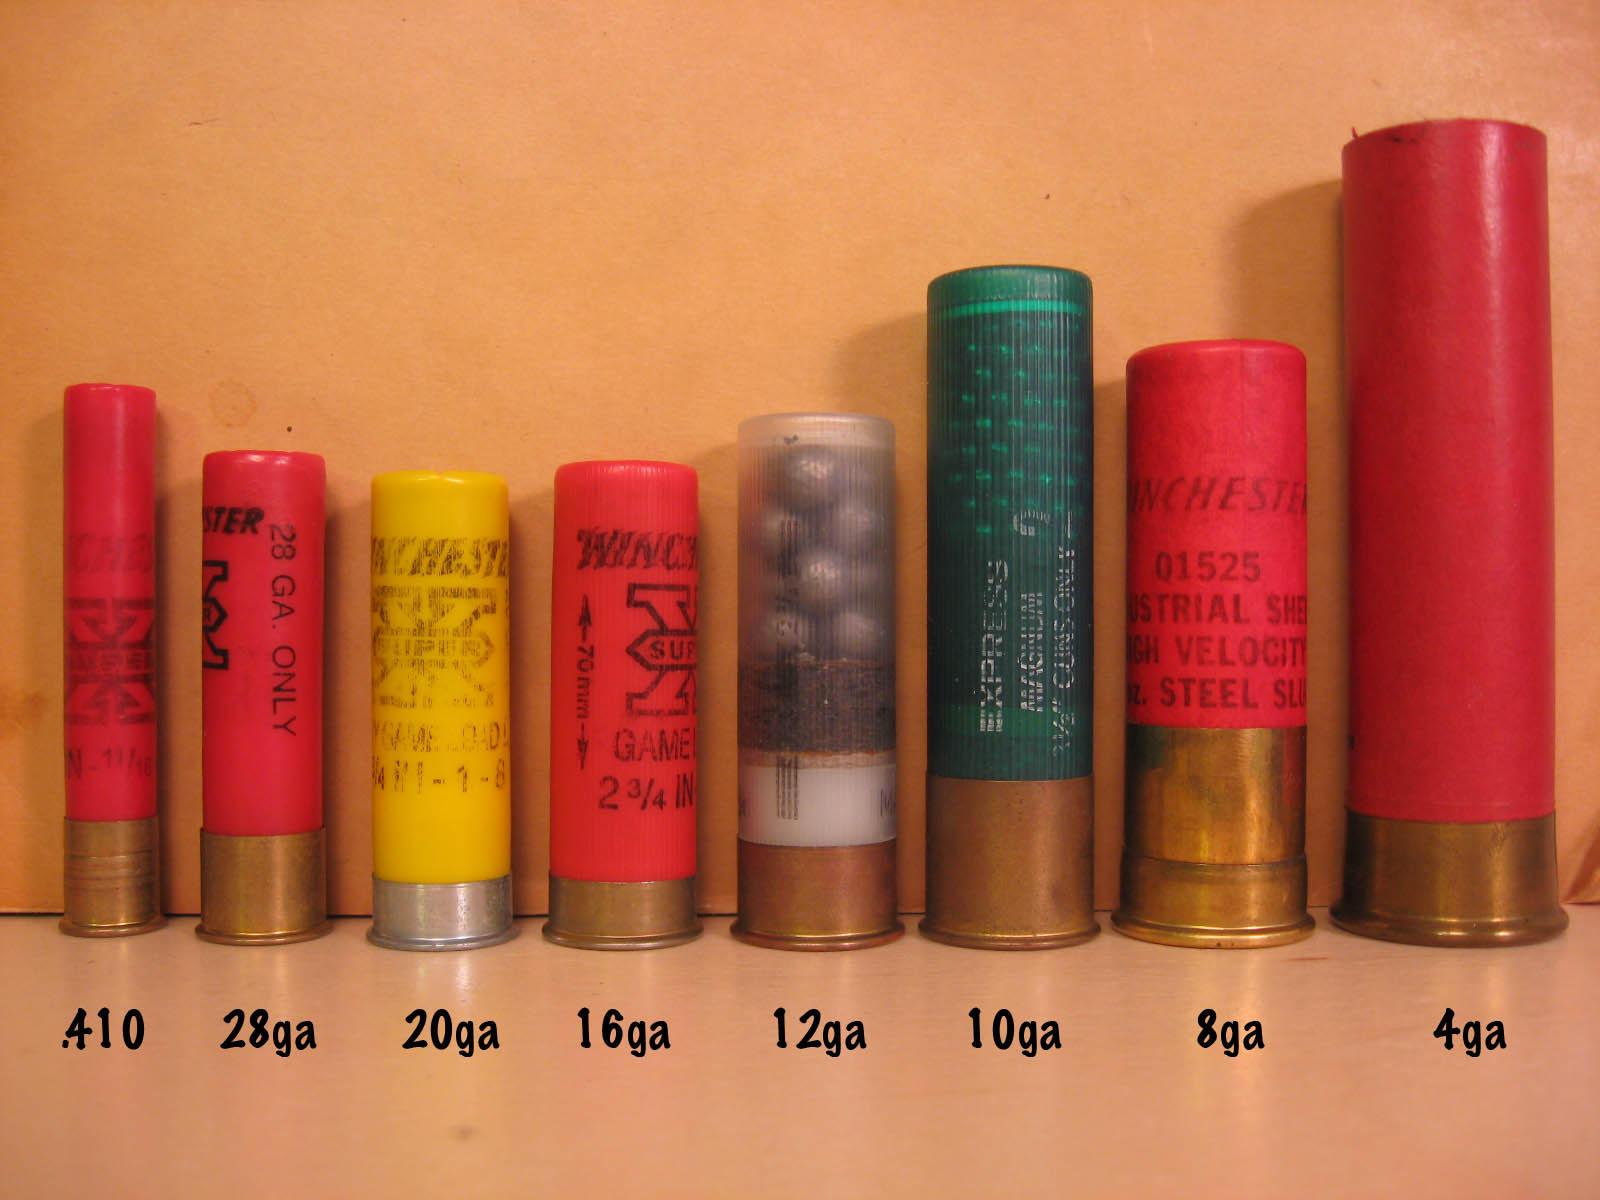 Shotgun Shell Visual Comparison